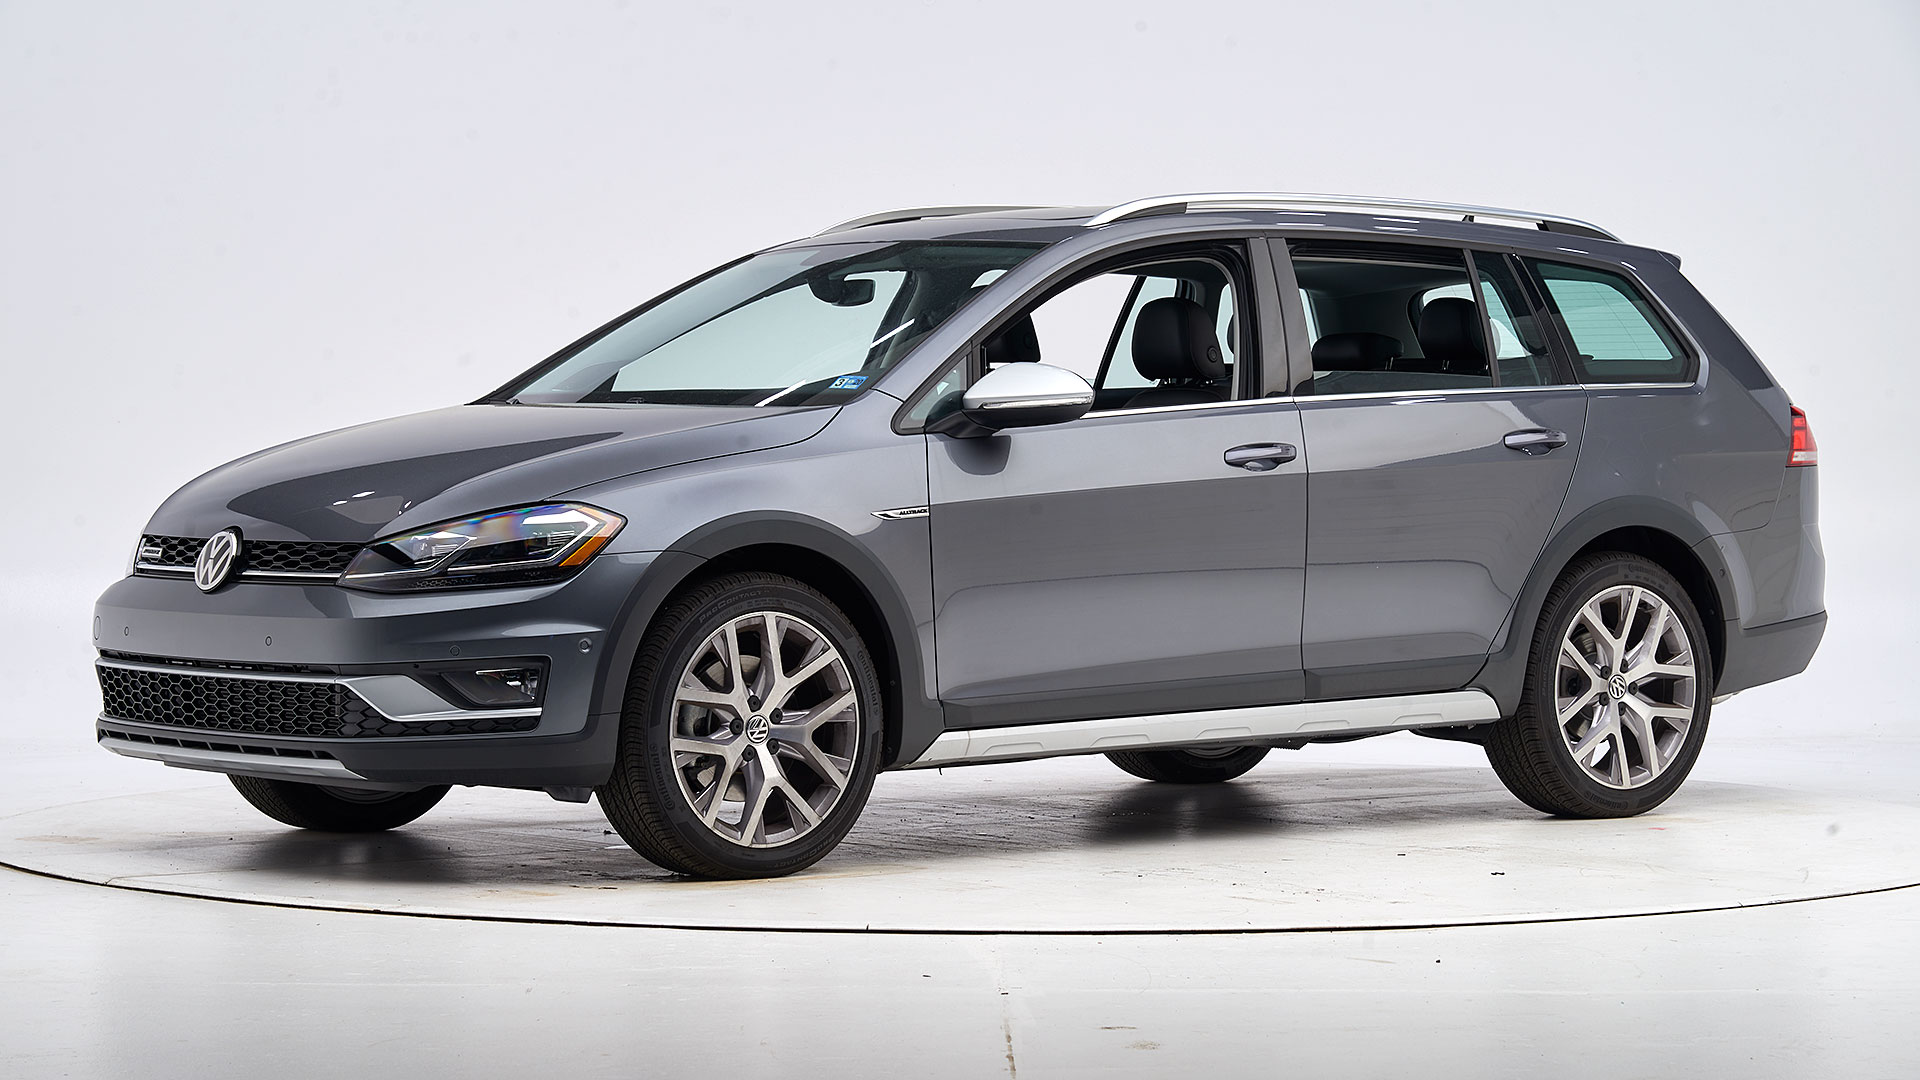 2019 Volkswagen Golf Alltrack 4-door wagon